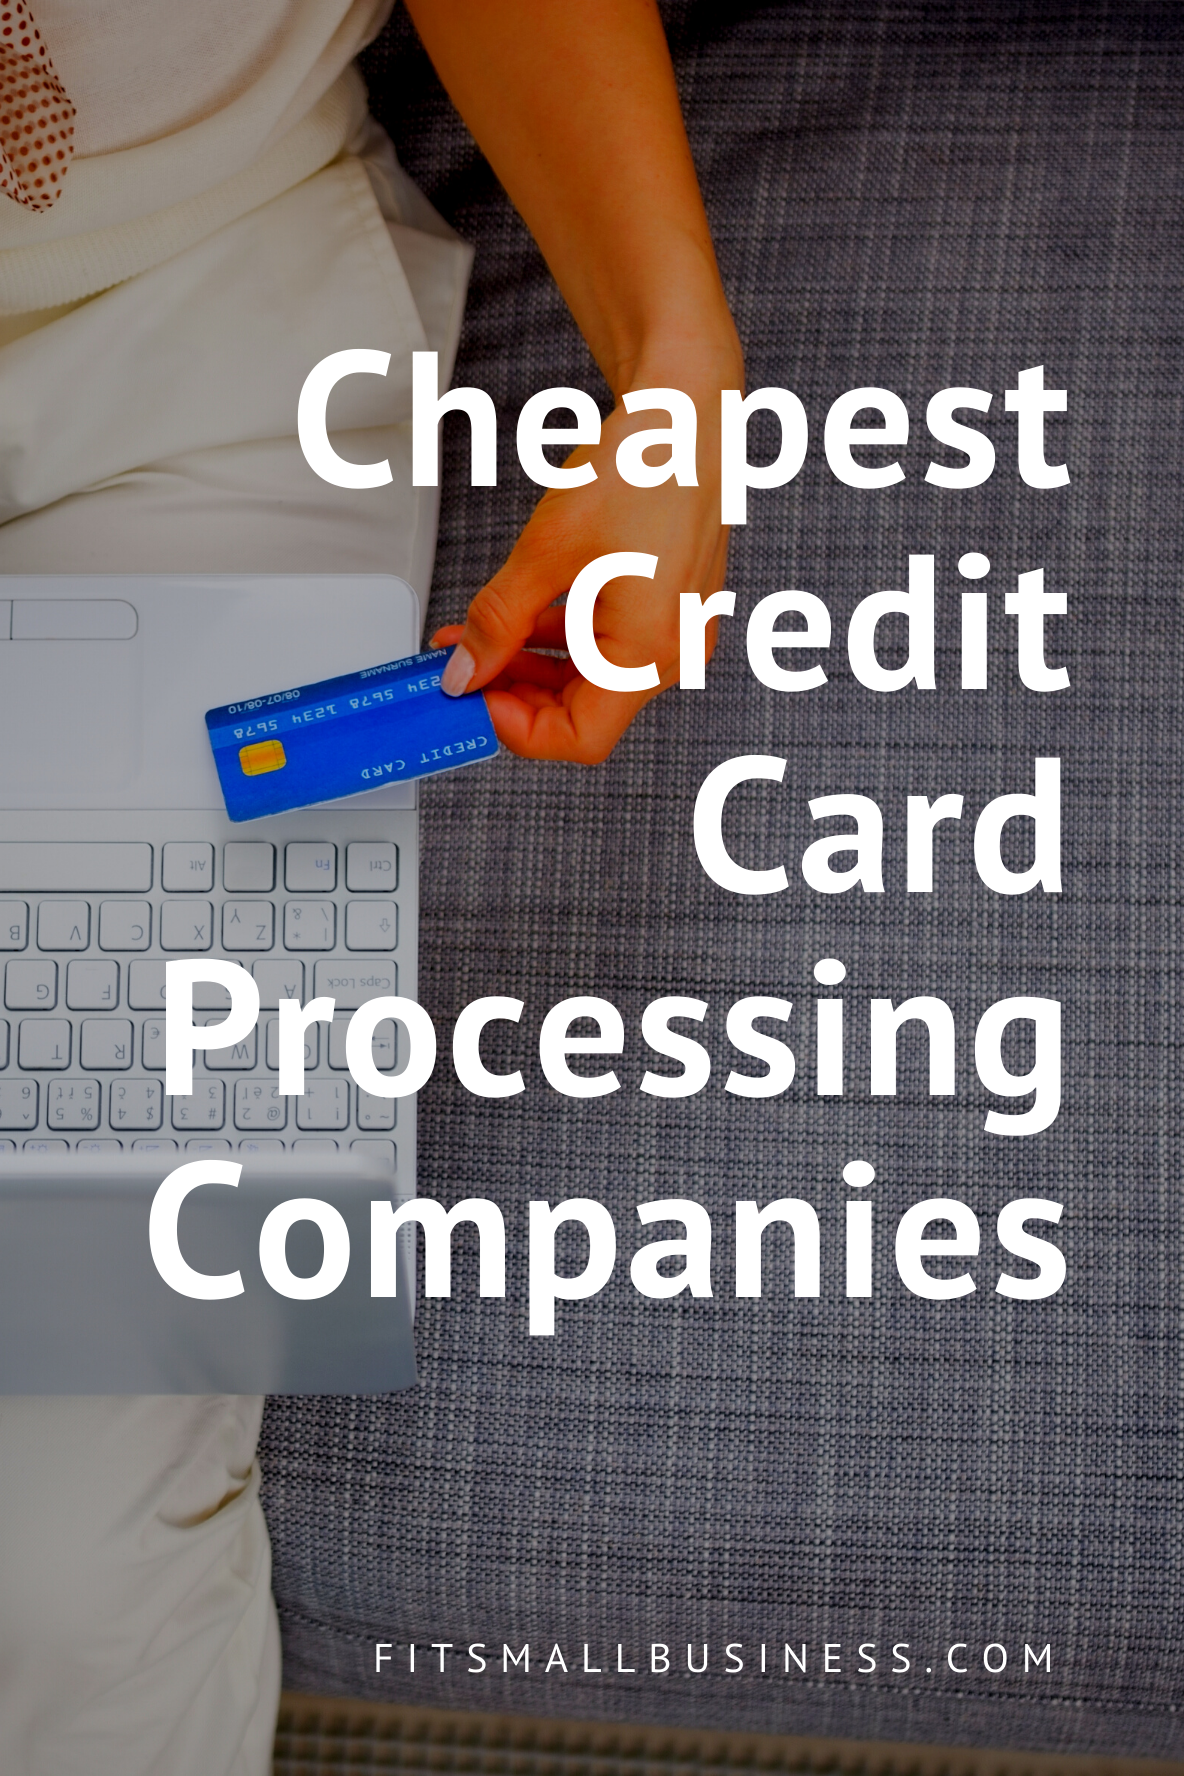 Cheapest Credit Card Processing Companies Credit Card Processing Small Business Credit Cards Business Credit Cards